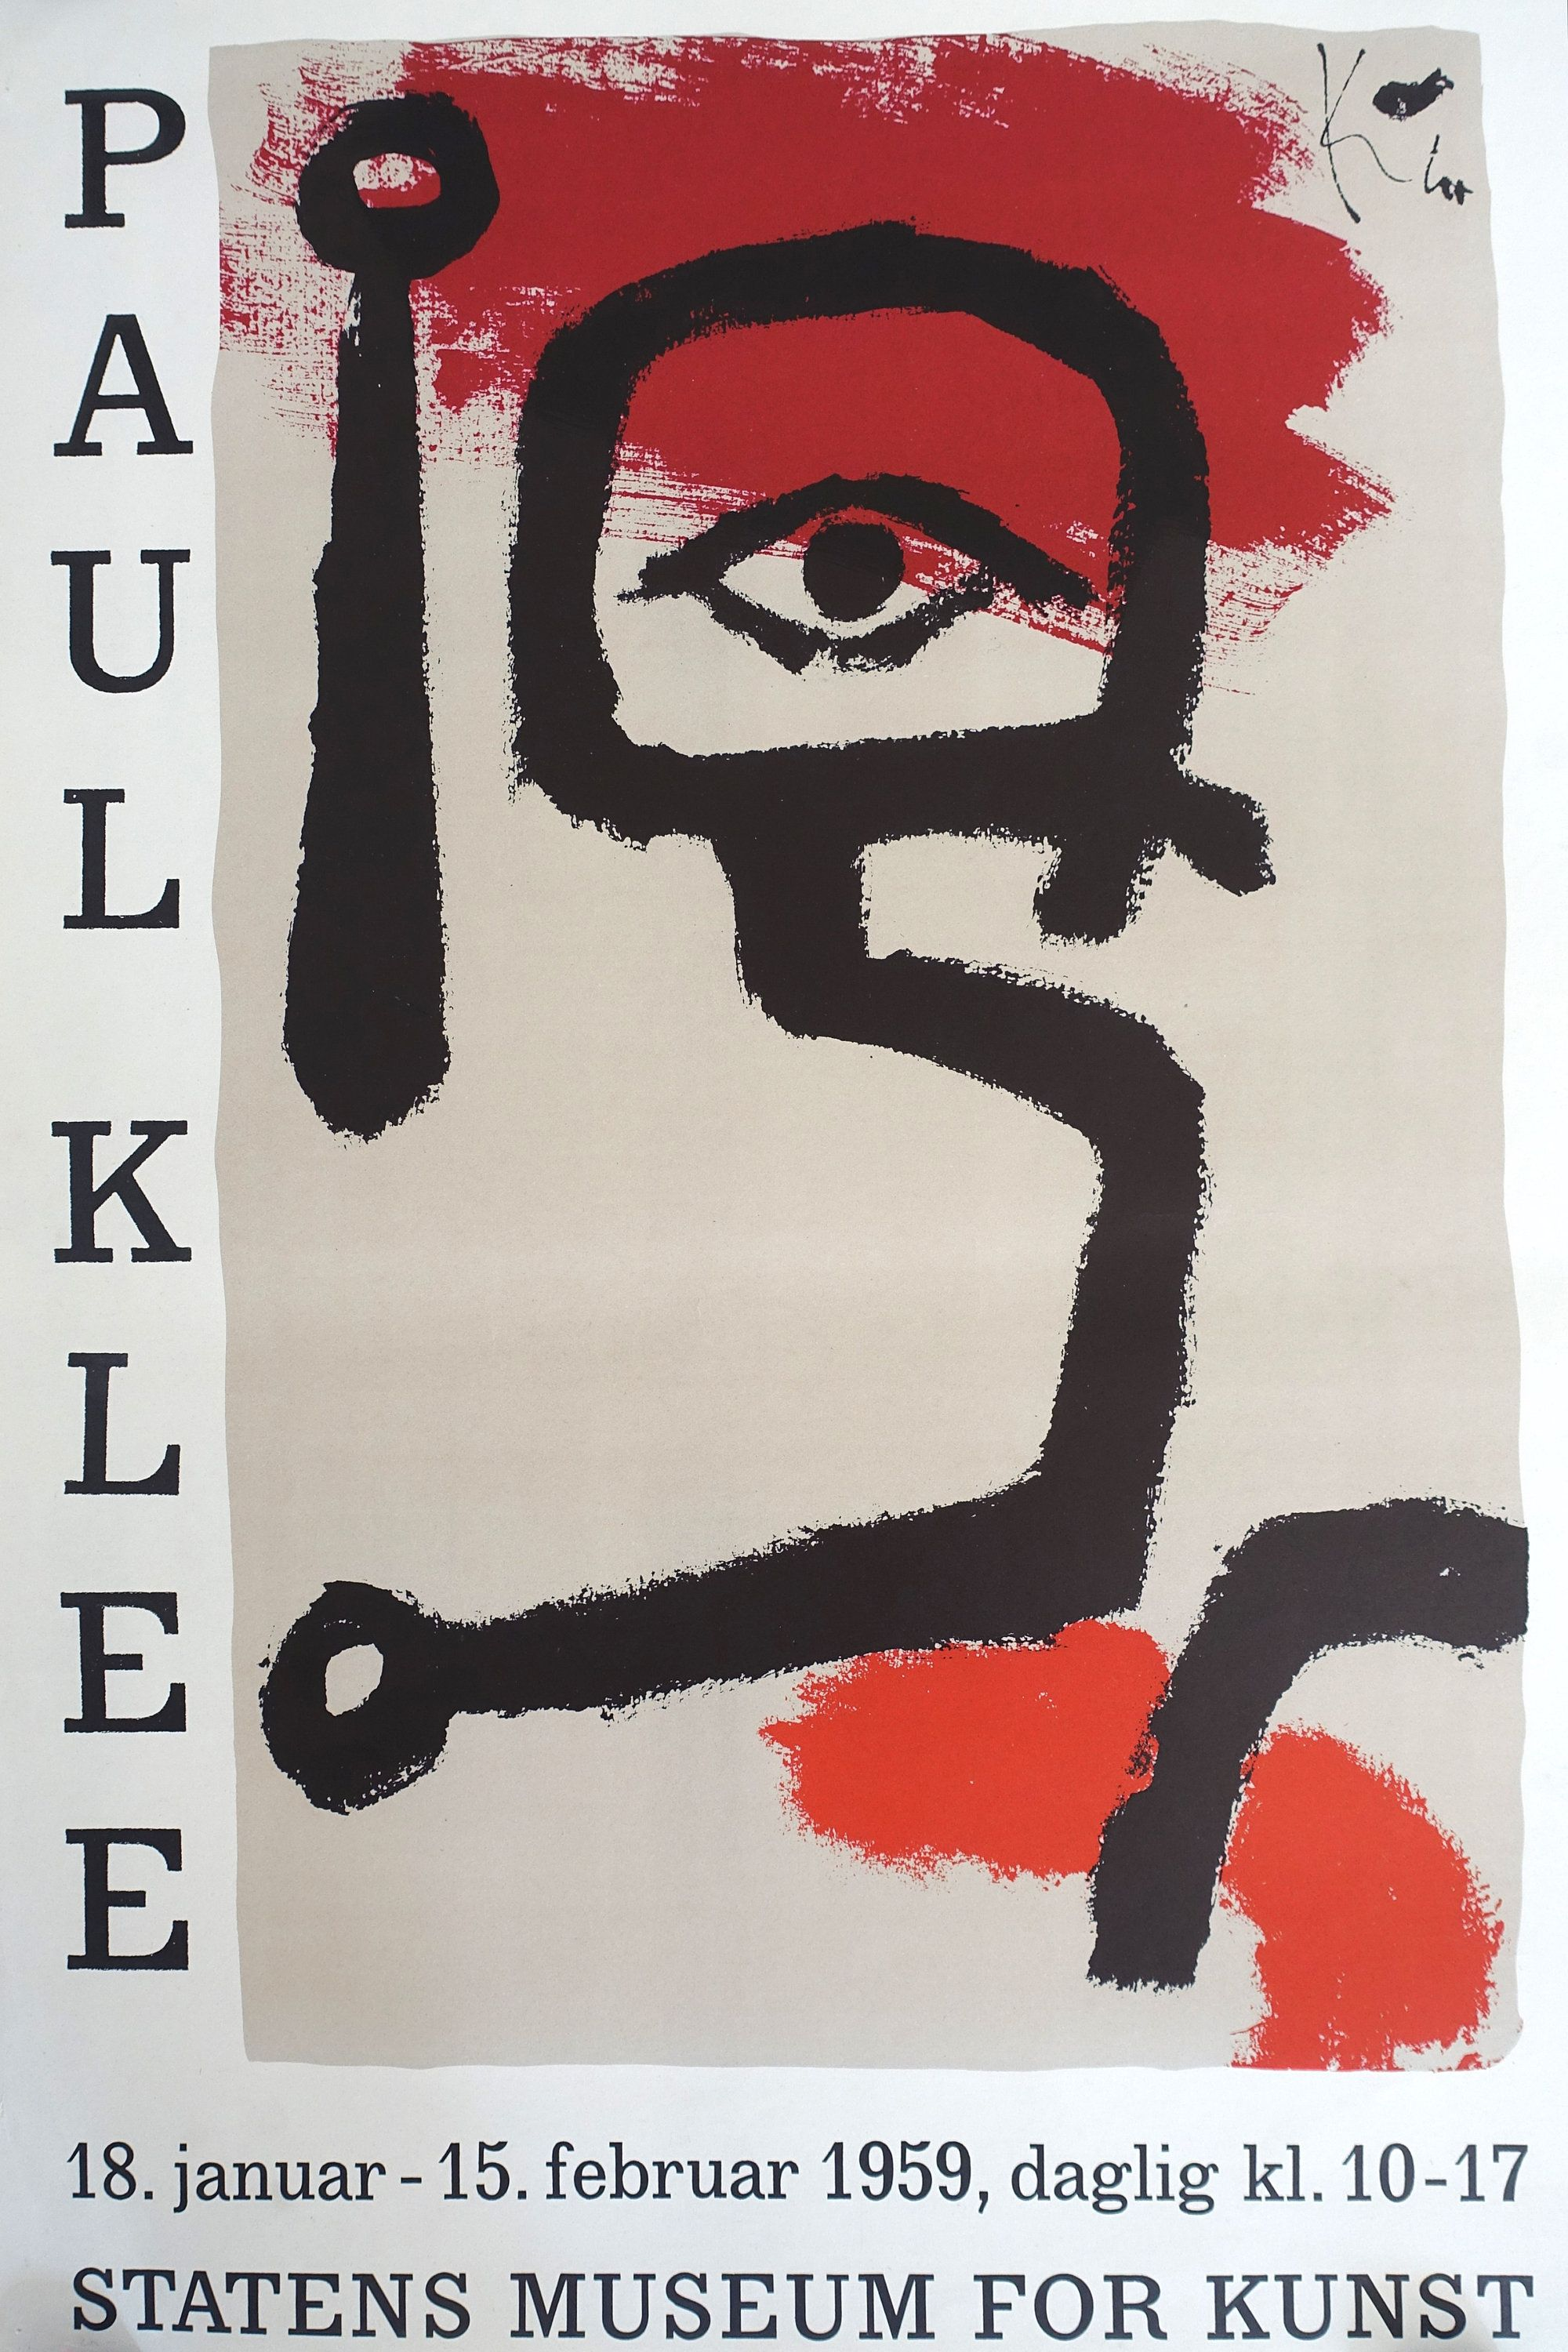 1959 Paul Klee Exhibition Poster From Statens Museum For Kunst Original Vintage Poster Exhibition Poster Vintage Posters Museum Poster